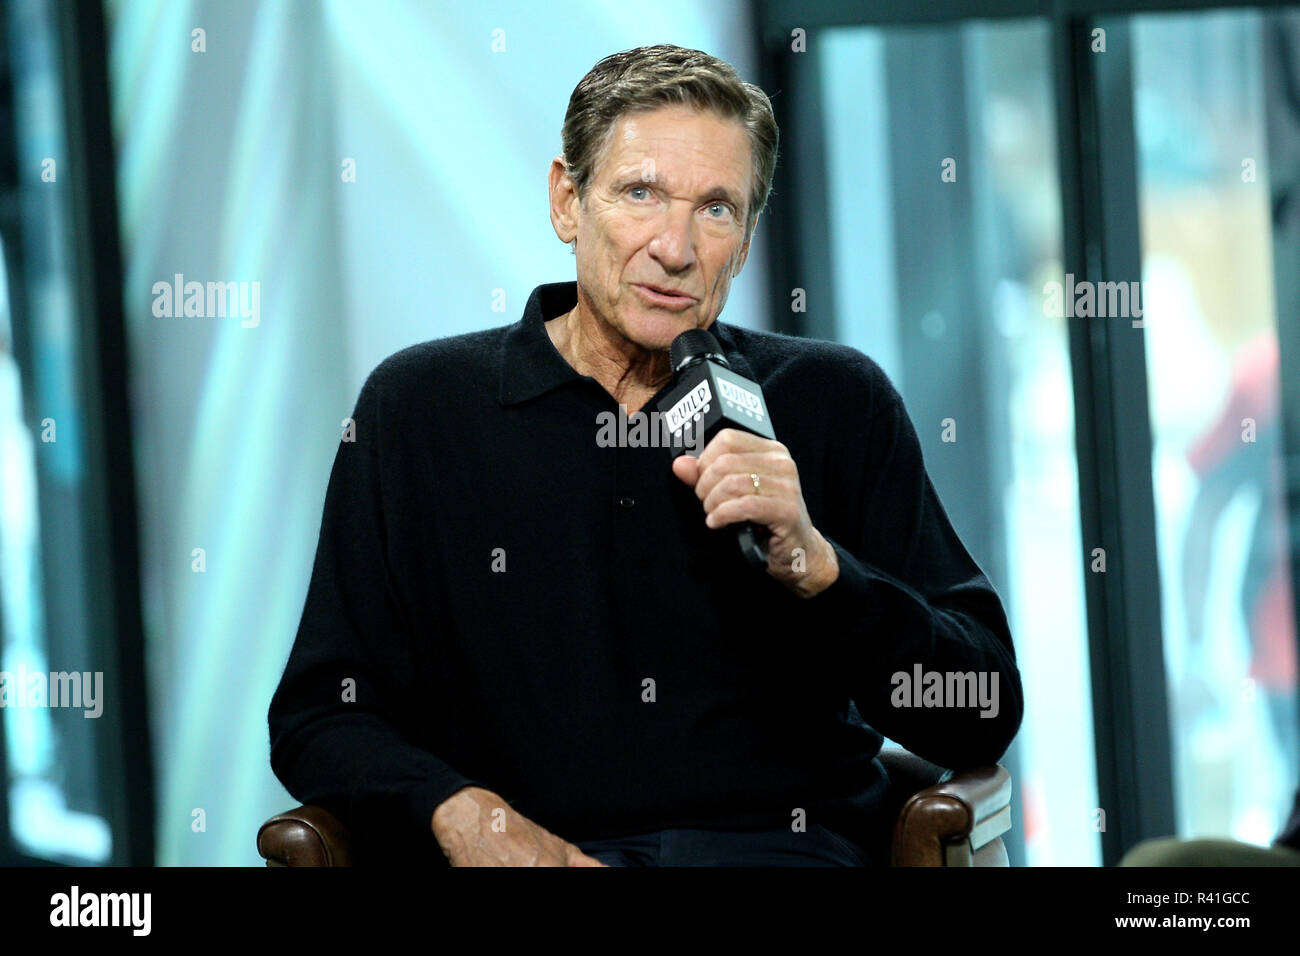 Maury Povich Stock Photos & Maury Povich Stock Images